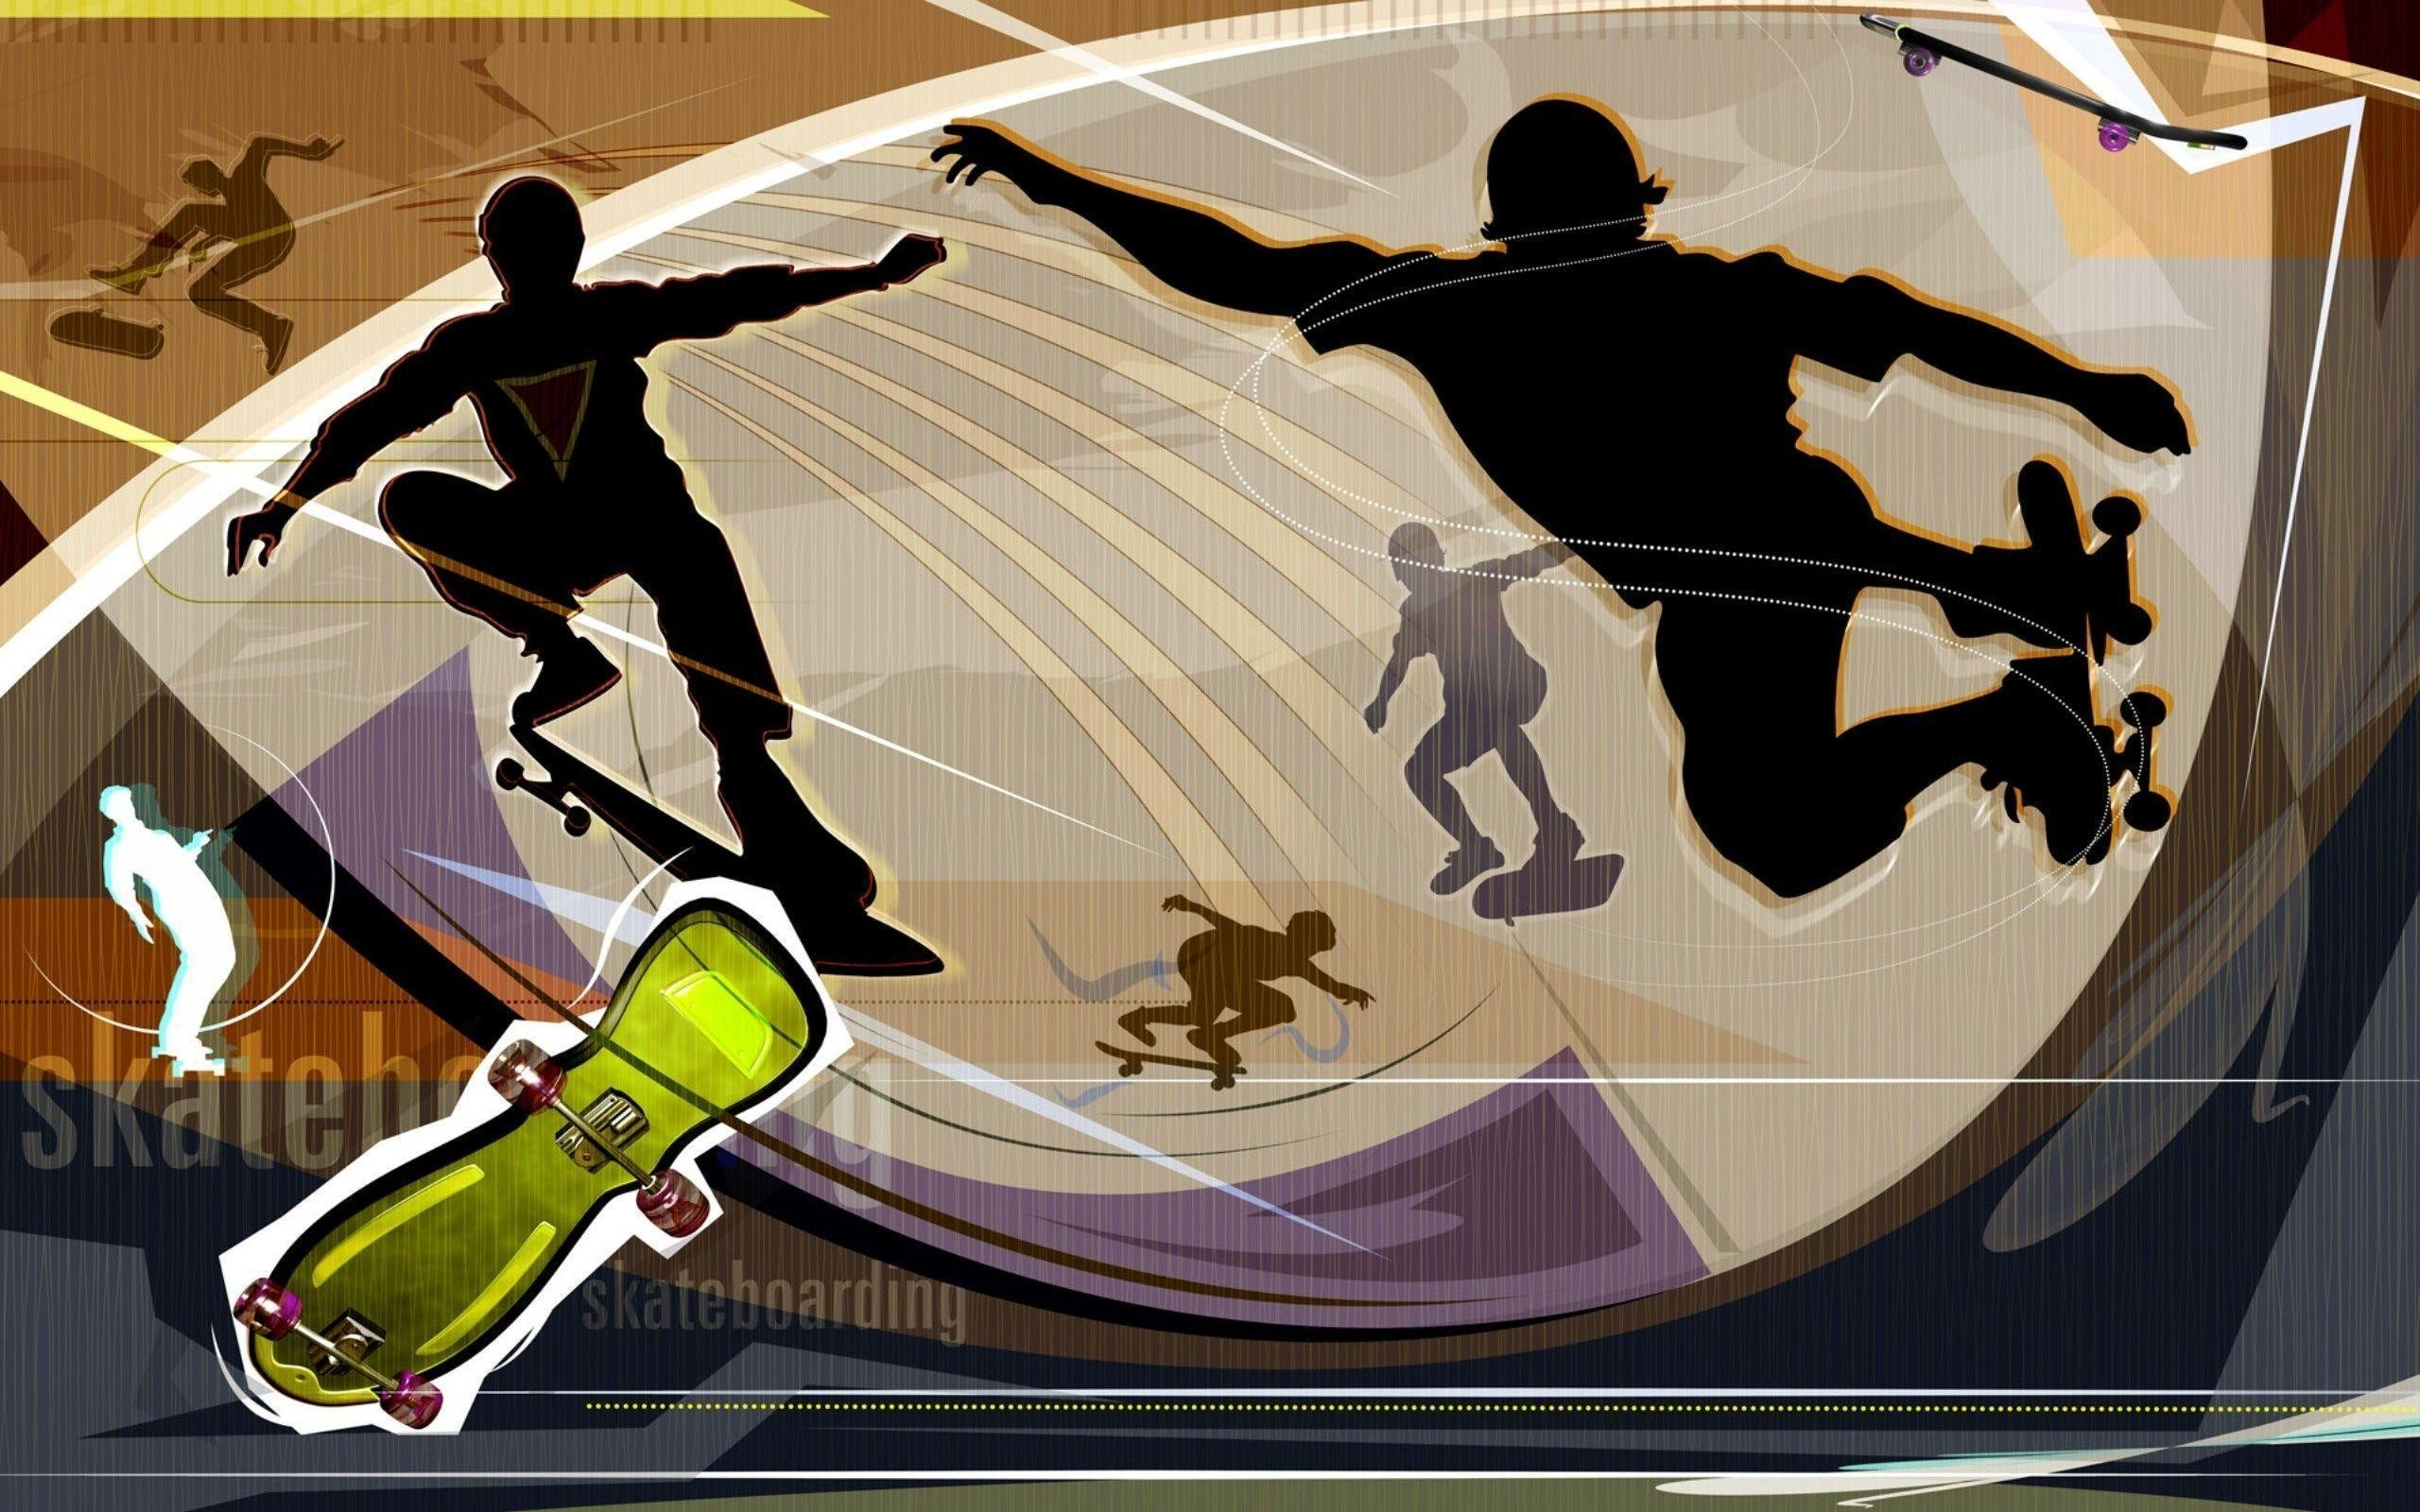 Cool Skateboarding Wallpapers (63+ images)